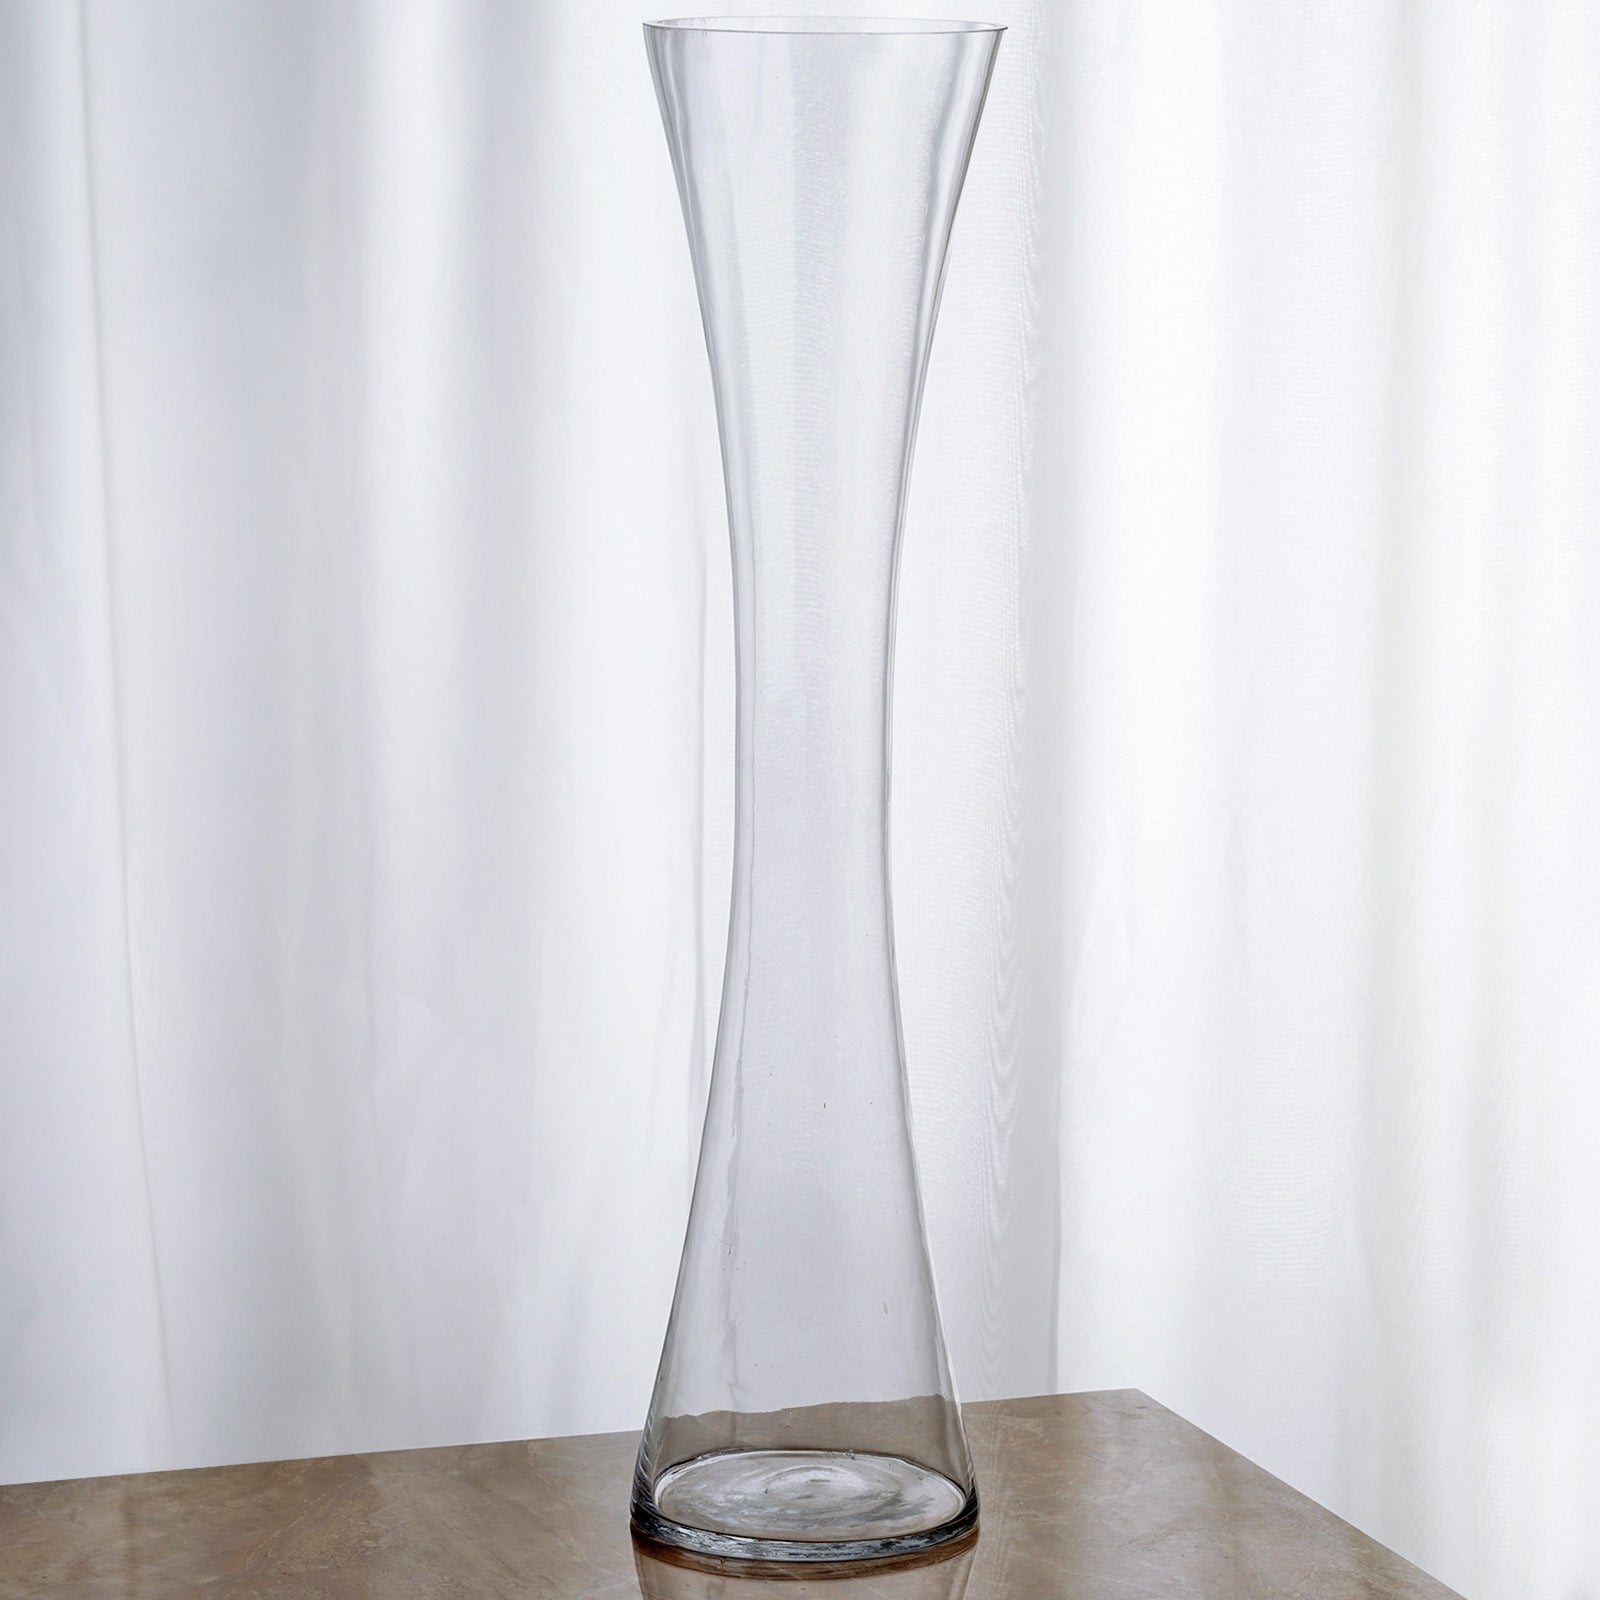 6 PCS Efavormart 24 Tall Clear Hourglass Shaped Floral Vase Wedding Party Decoration